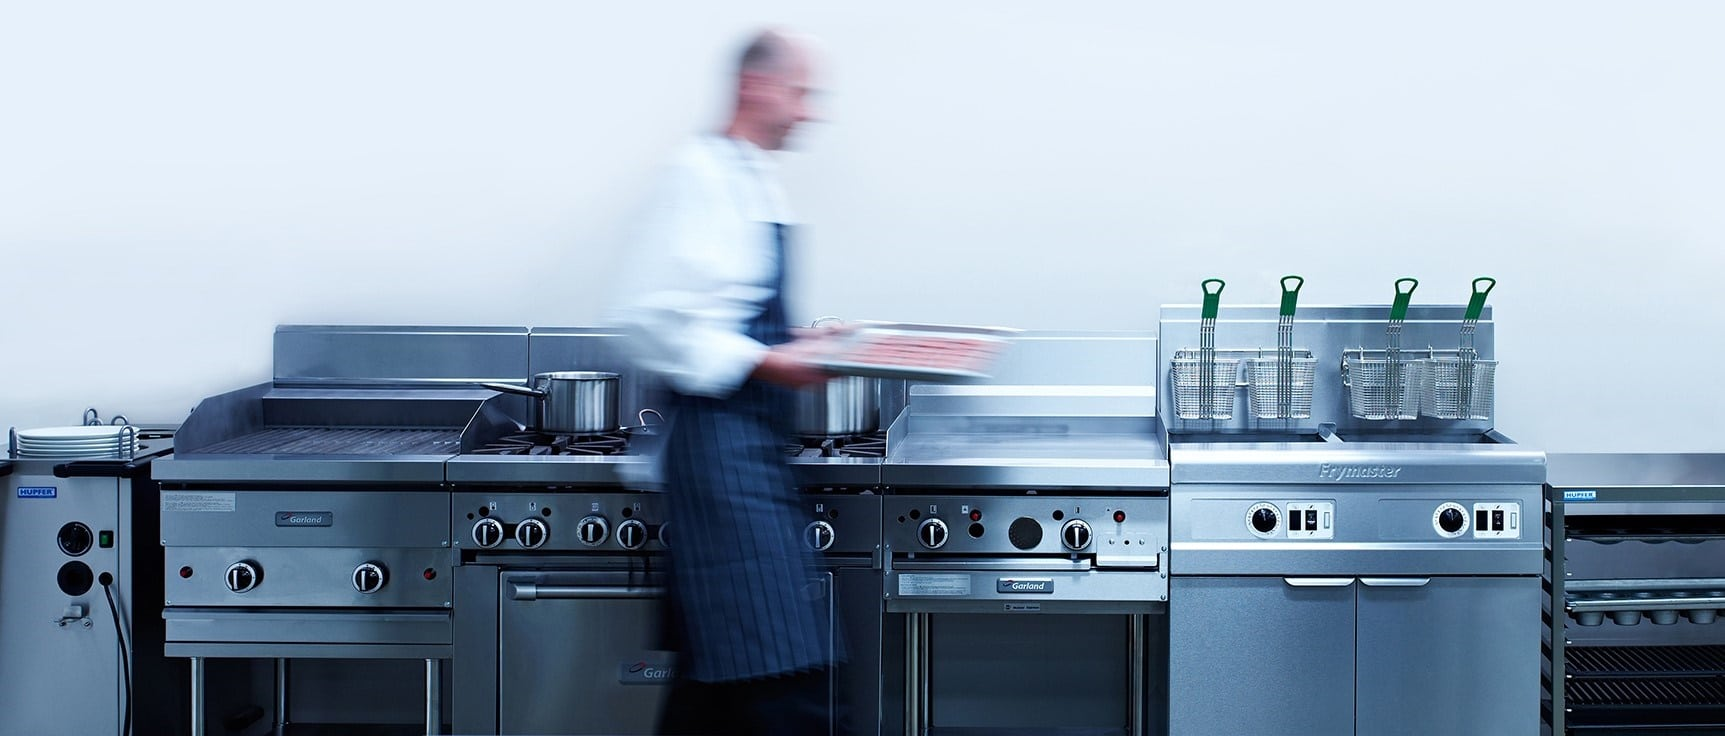 The Commercial Kitchen equipment essential guide